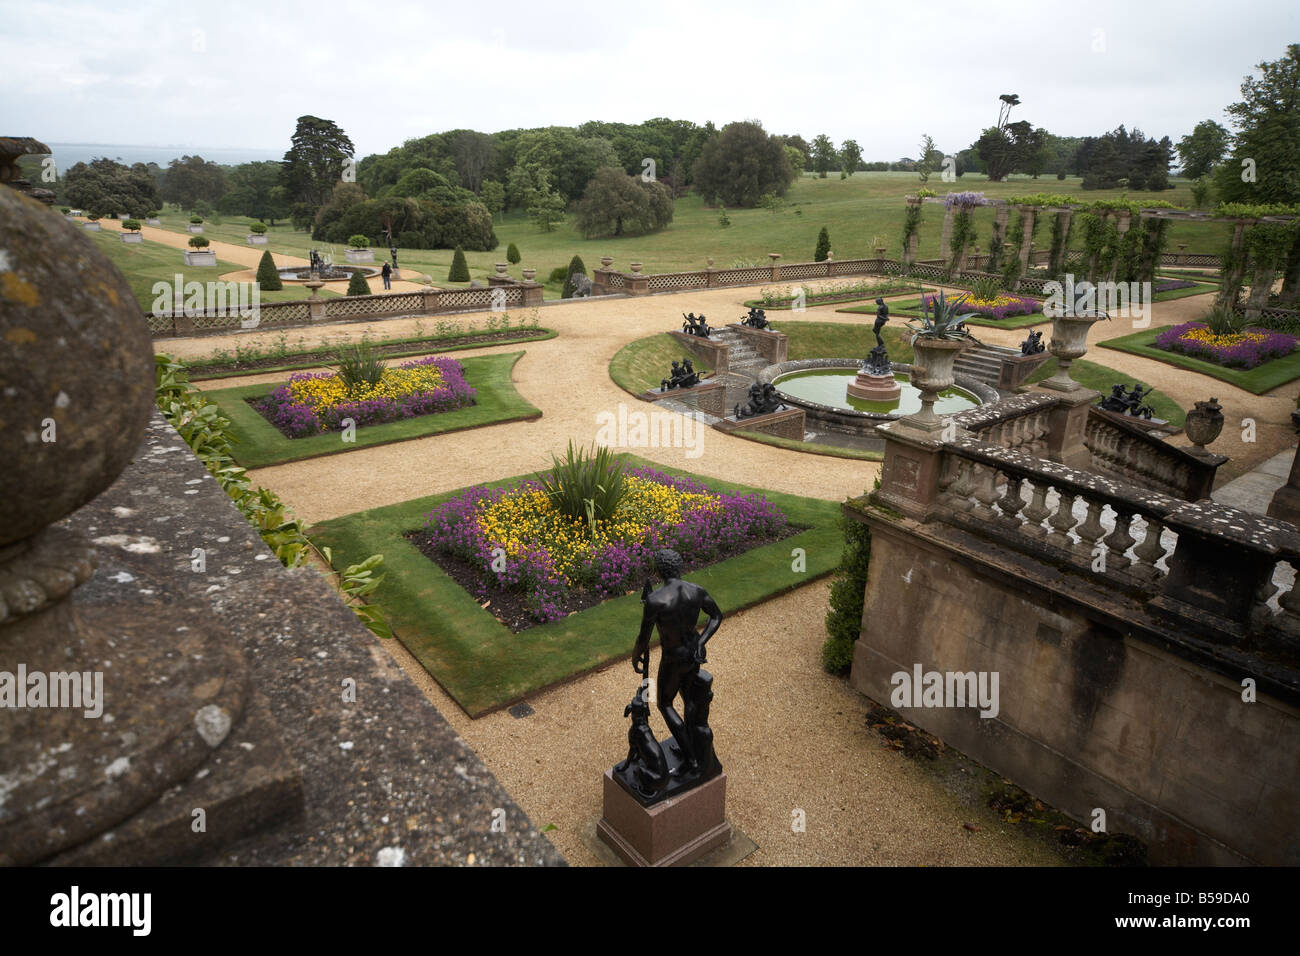 Terrace gardens of Osborne House former home of Queen Victoria East Cowes Isle of Wight England UK English Heritage - Stock Image